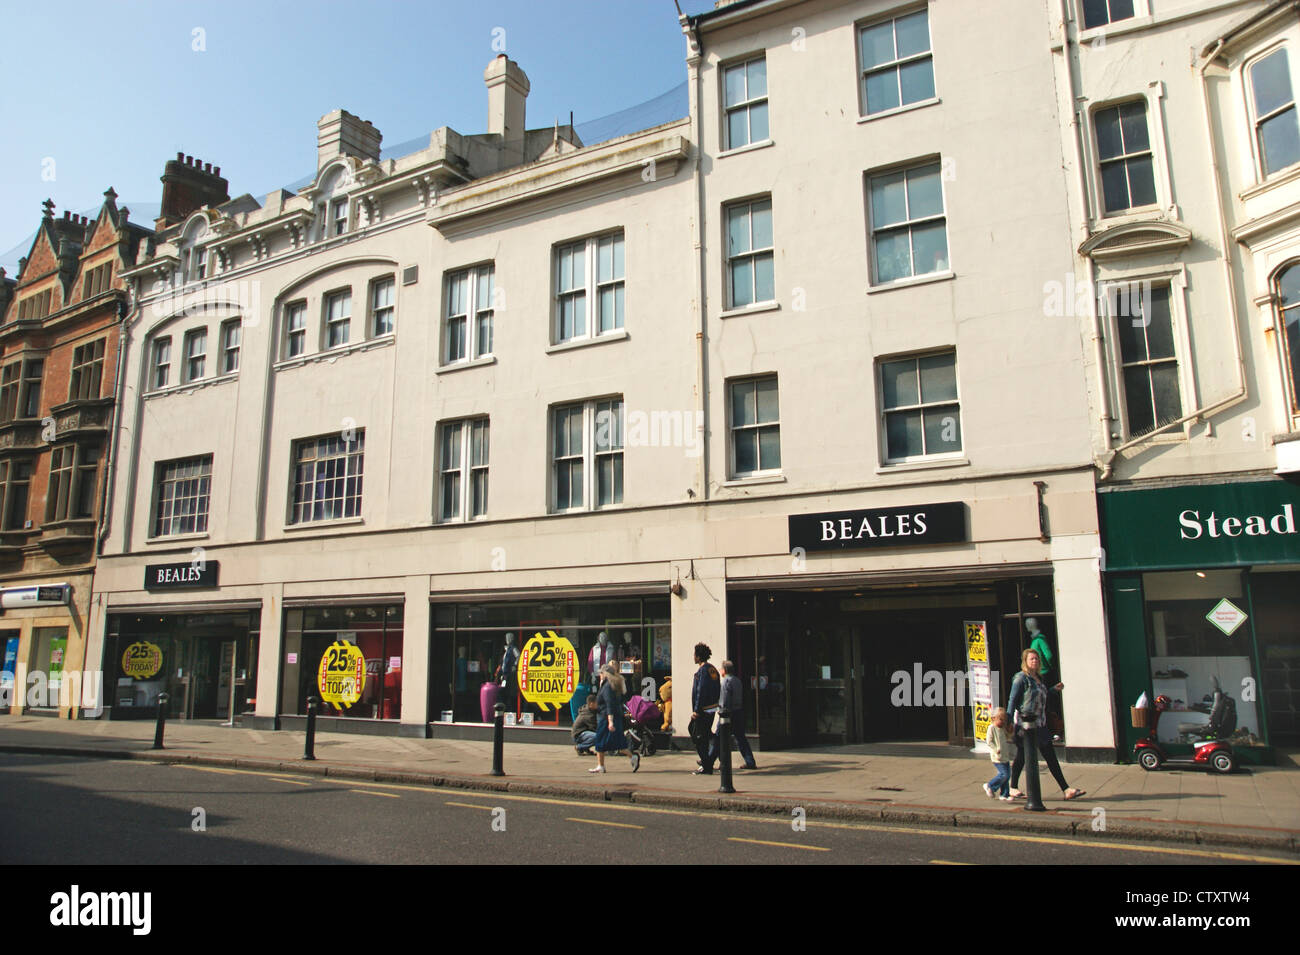 Beales department retailer store with a sale on Worthing West Sussex UK now closing down - Stock Image